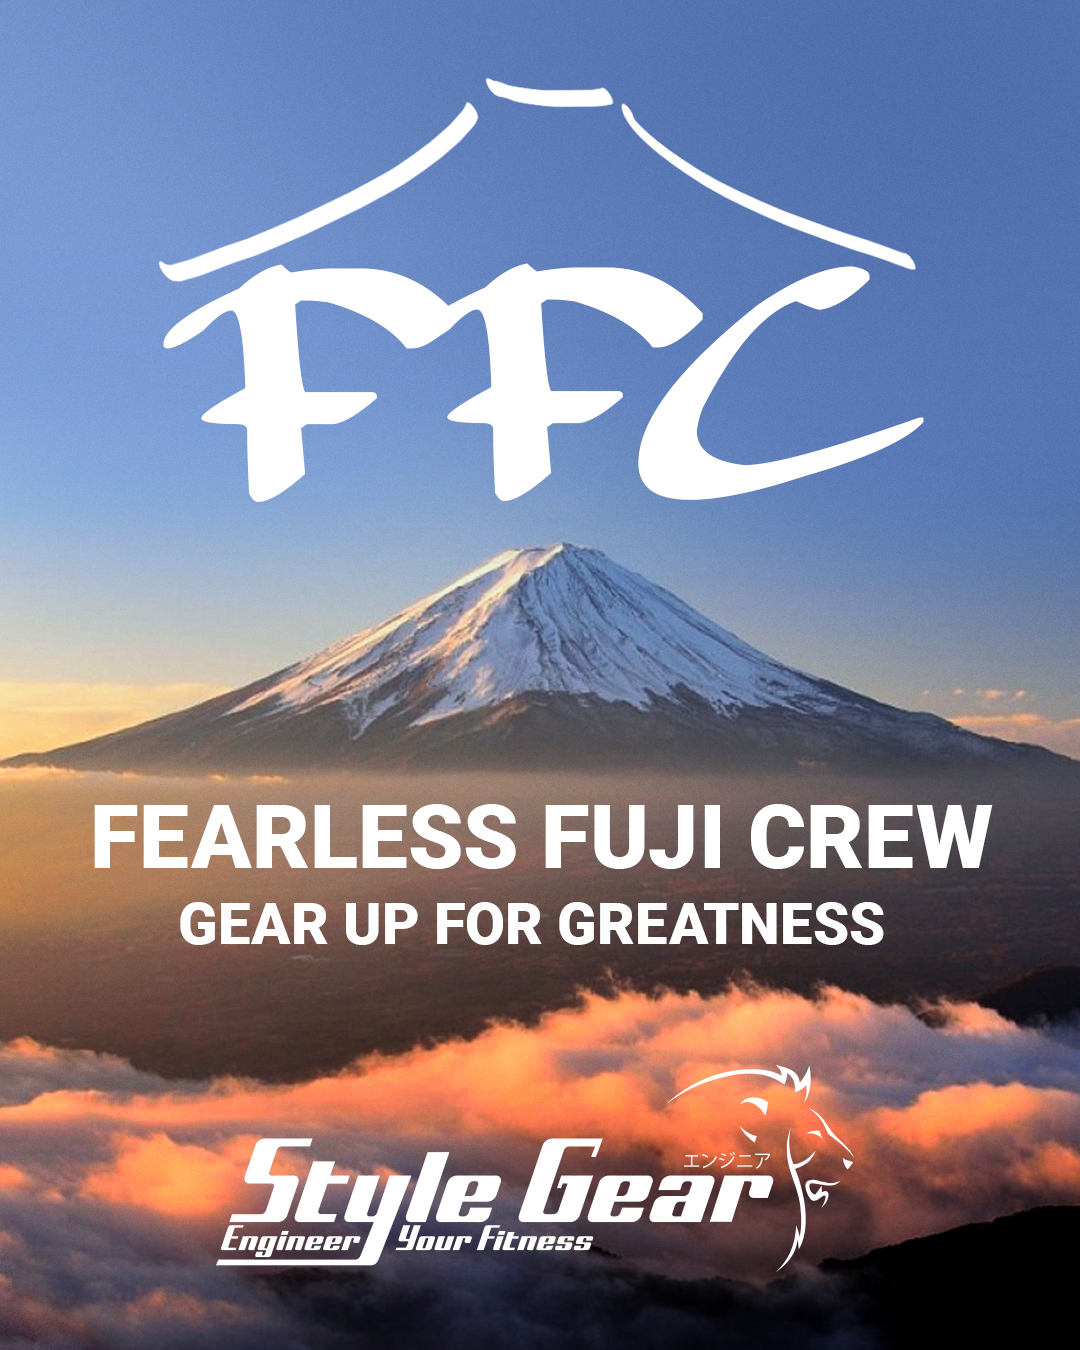 Fearless Fuji Crew - Gear up for Greatness - We are happy to announce that our head PT Mai Nomura has made a Japanese athletes crew called FFC - Gear up for greatness.Our next training session is 7th Oct 2:00-3:30pm.Spots are almost fully booked! So book now and come join our crew* Join us if you are; • Training on a regular basis or have a sports background and are willing to improve your performance and skills.• Highly motivated with a strong mindset, who wants to stick with an active lifestyle for the long term.• Wanting to be a part of high quality gym crew, with a great atmosphere.We train with a purpose. We help each other. We shift gears to improve our quality of life. Contact Mai for further information.*We require that all trainees must have training experience, or at least some background in sports.